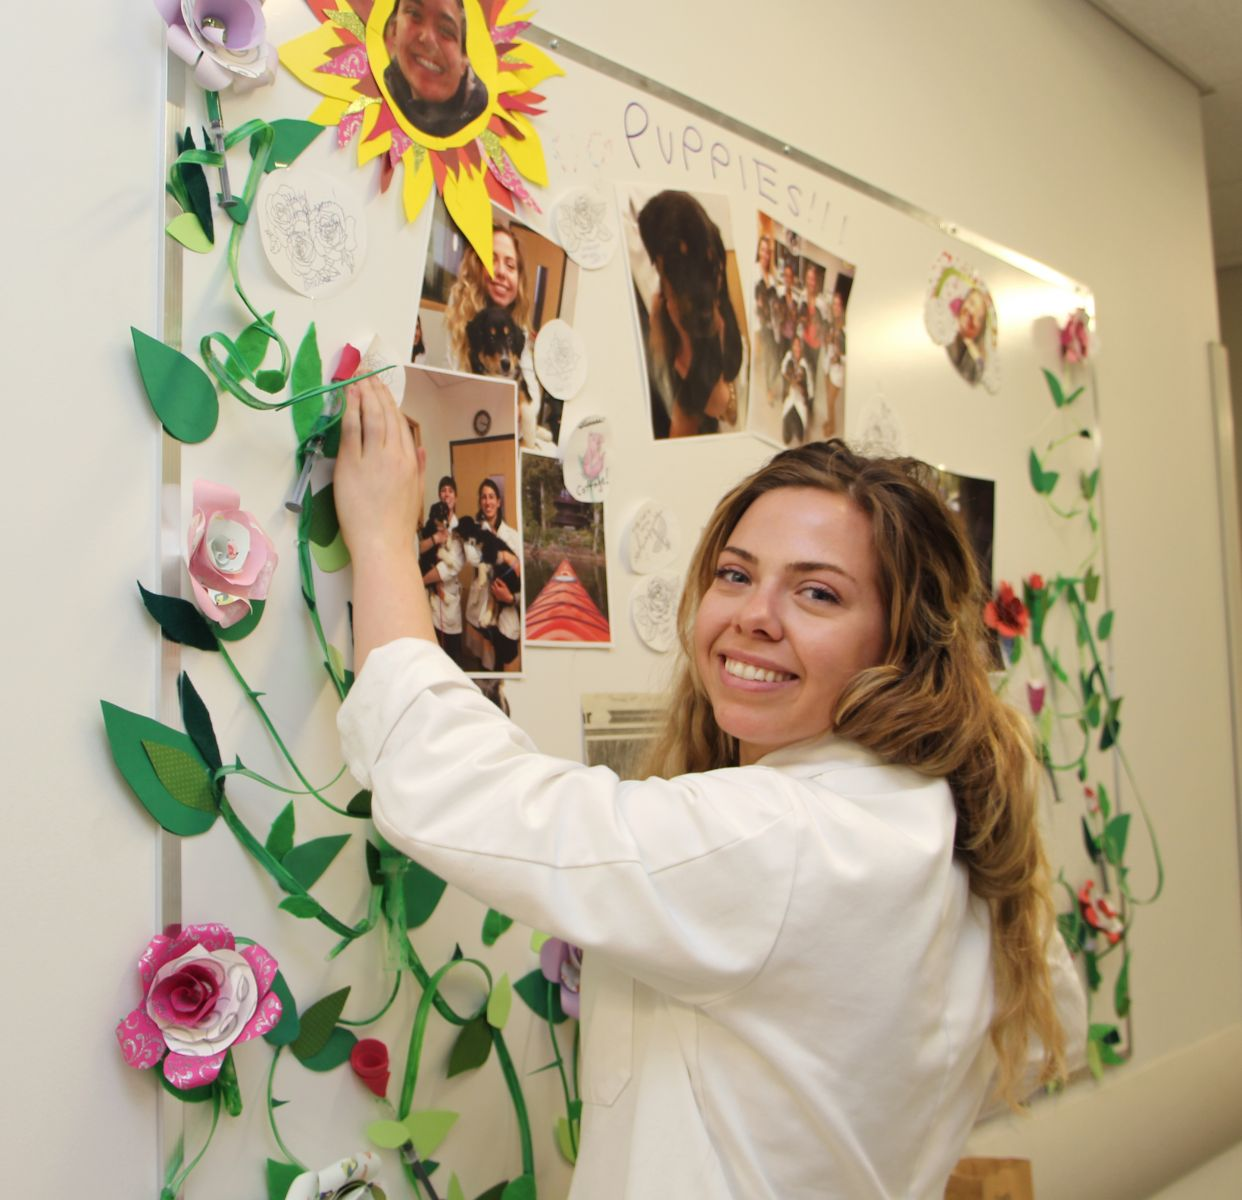 Fourth year student veterinarian with Wellness Board at Hill's Pet Nutrition Primary Healthcare Centre at the University of Guelph's Ontario Veterinary College